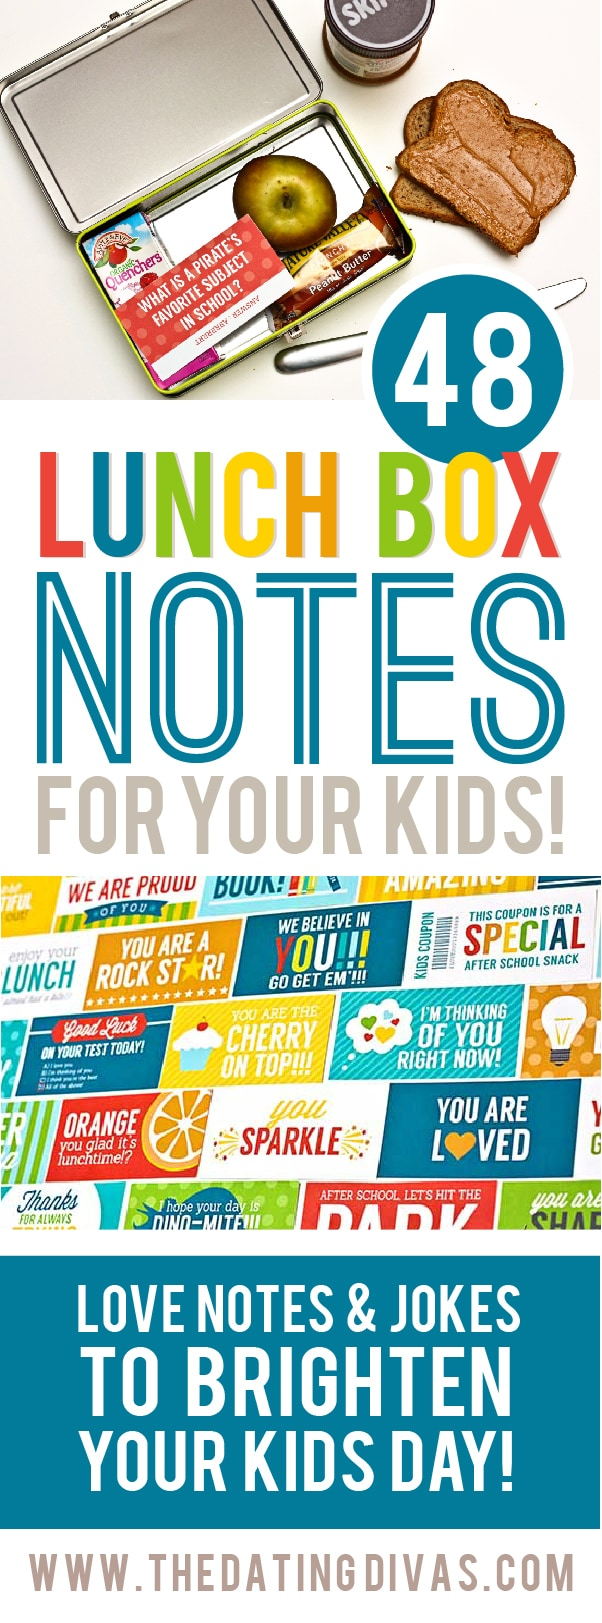 Lunch Box Notes and Lunch Box Jokes for Kids